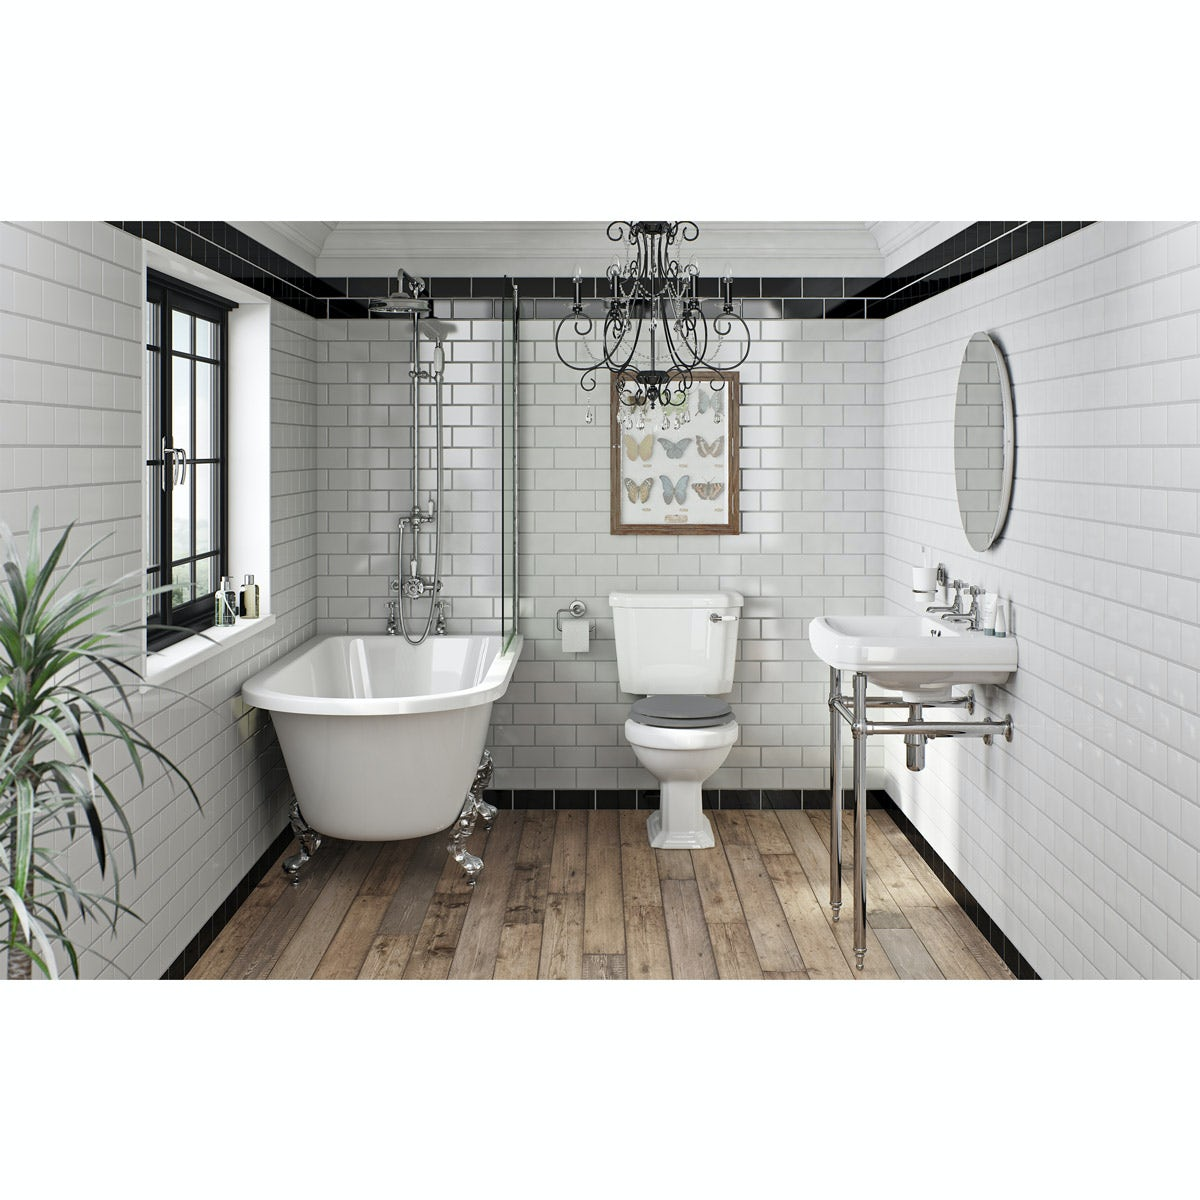 The Bath Co. Dulwich grey bathroom suite with freestanding shower bath